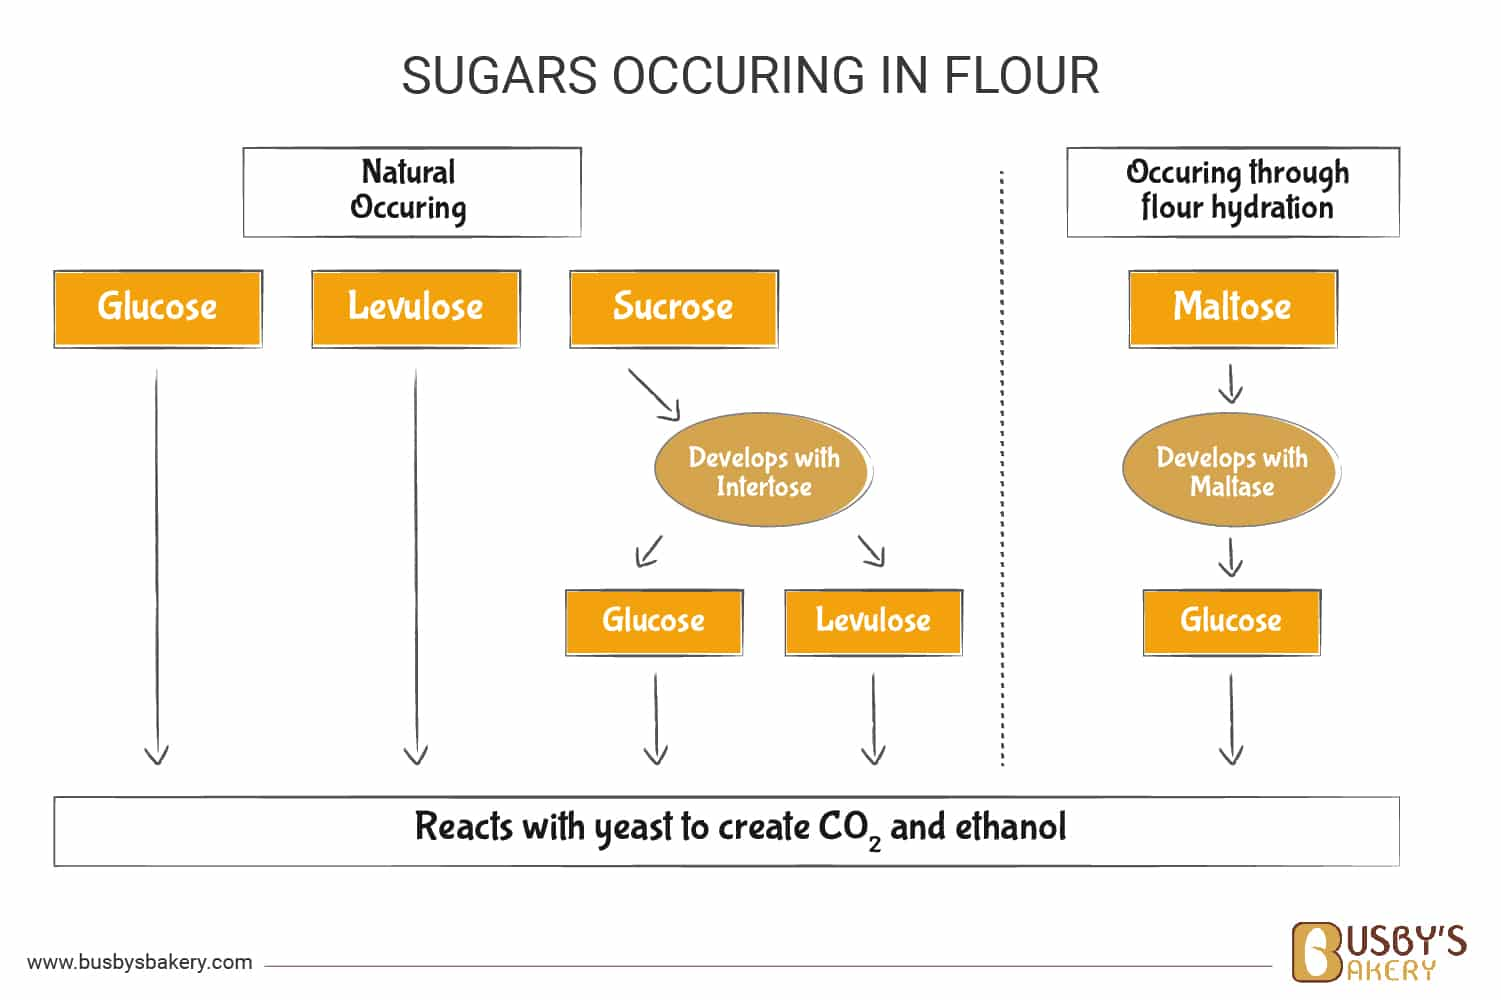 How sugars occur from the flour diagram